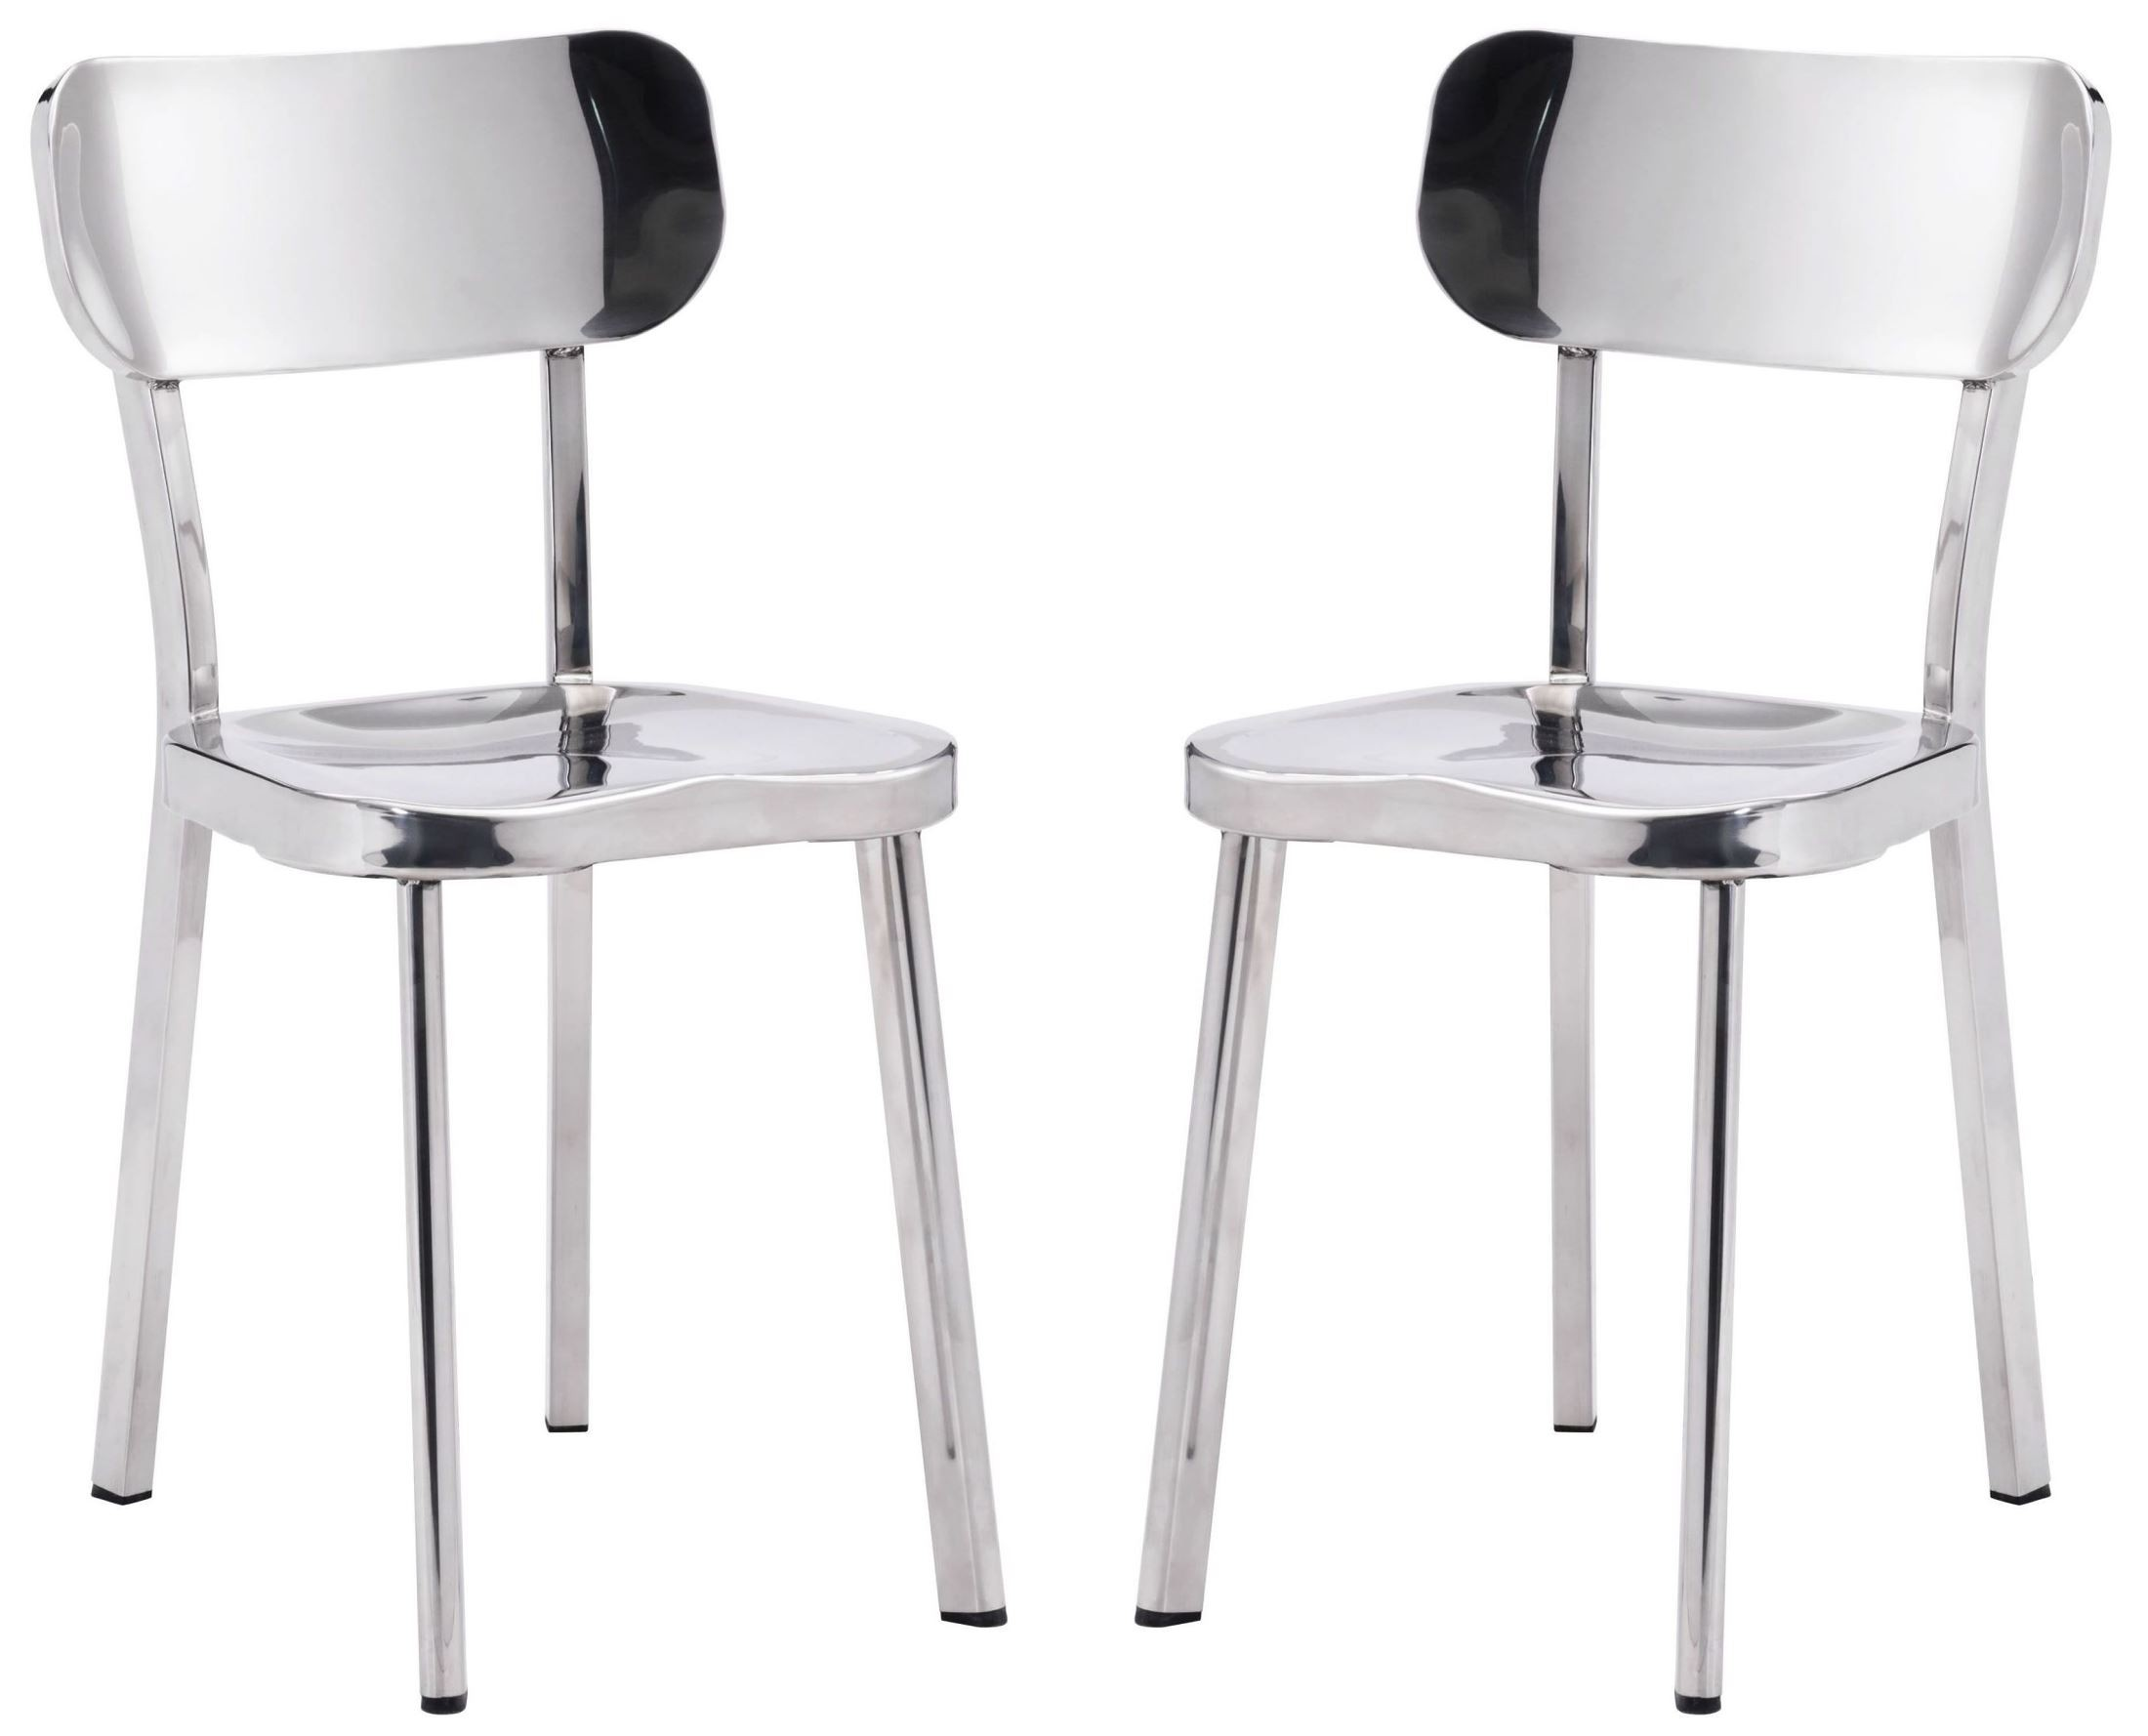 Winter Polished Stainless Steel Dining Chair Set Of 2 From